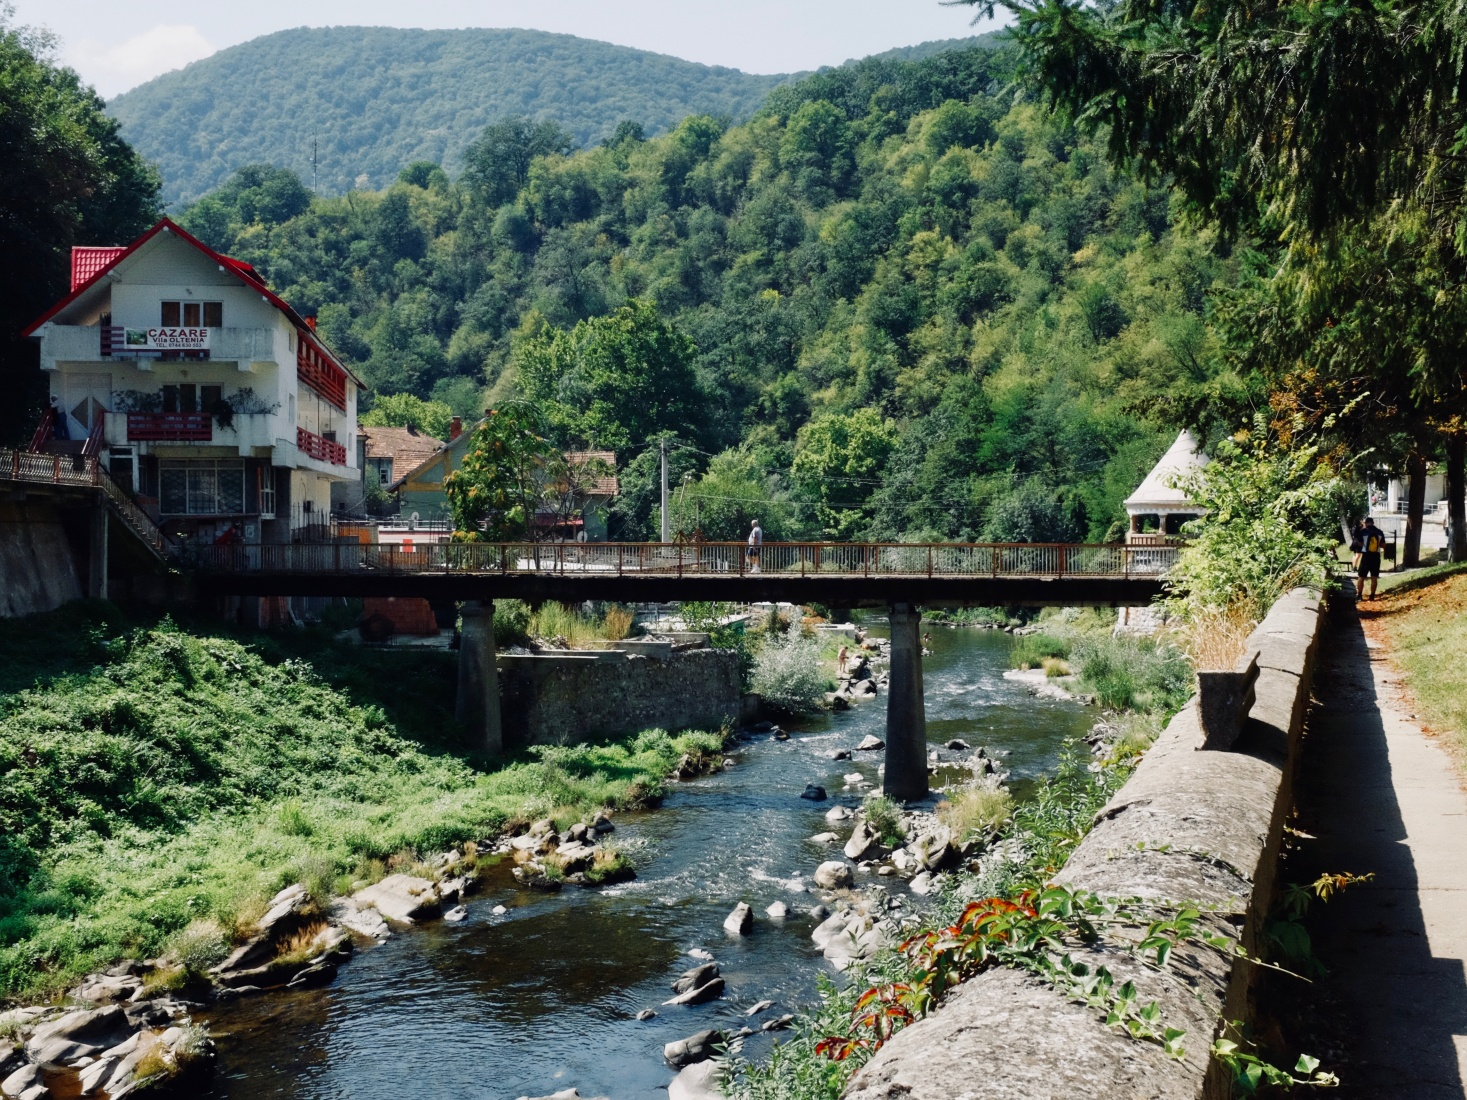 The view toward the Cerna River as it flow to the Baths of Hercules in Brașov, Romania.